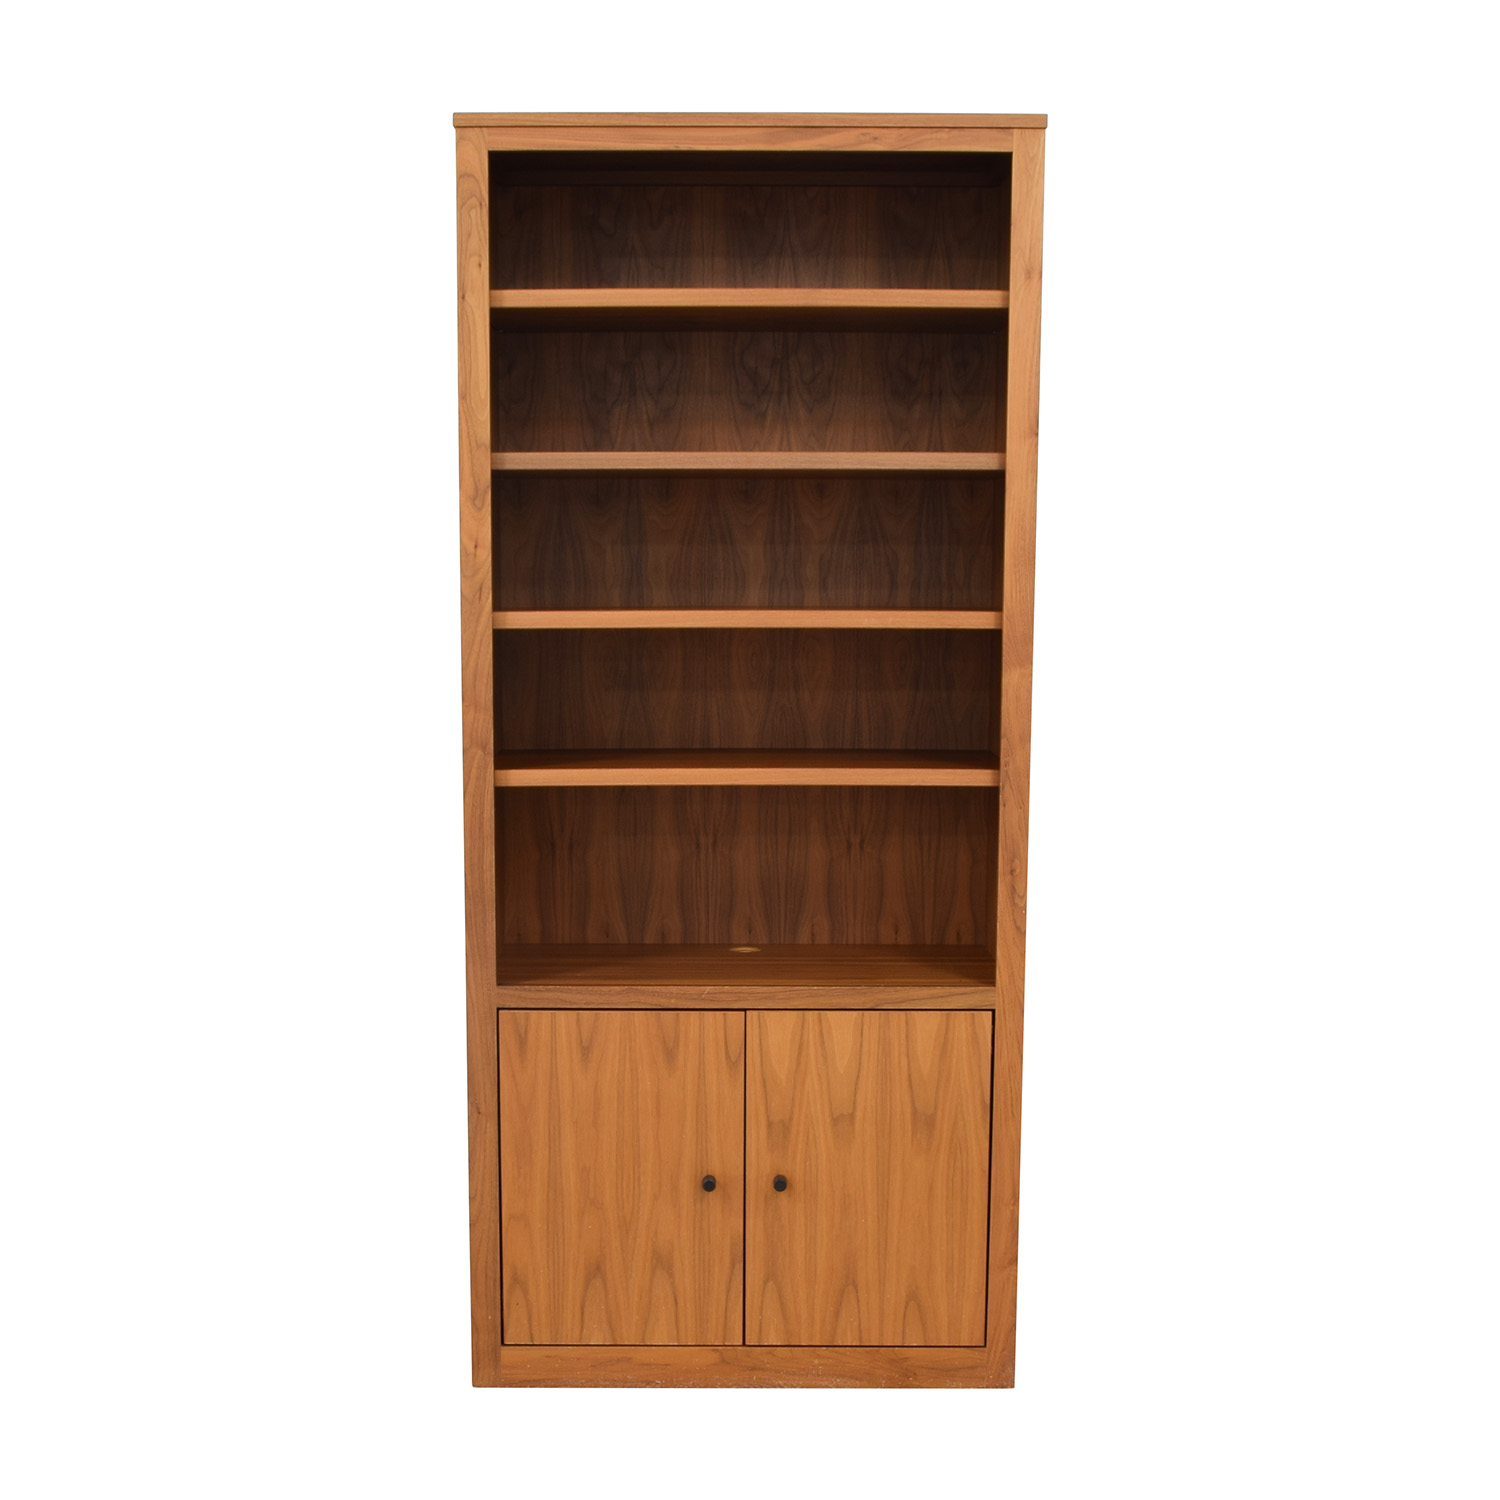 shop Room & Board Woodwind Custom Two Door Bookcase Room & Board